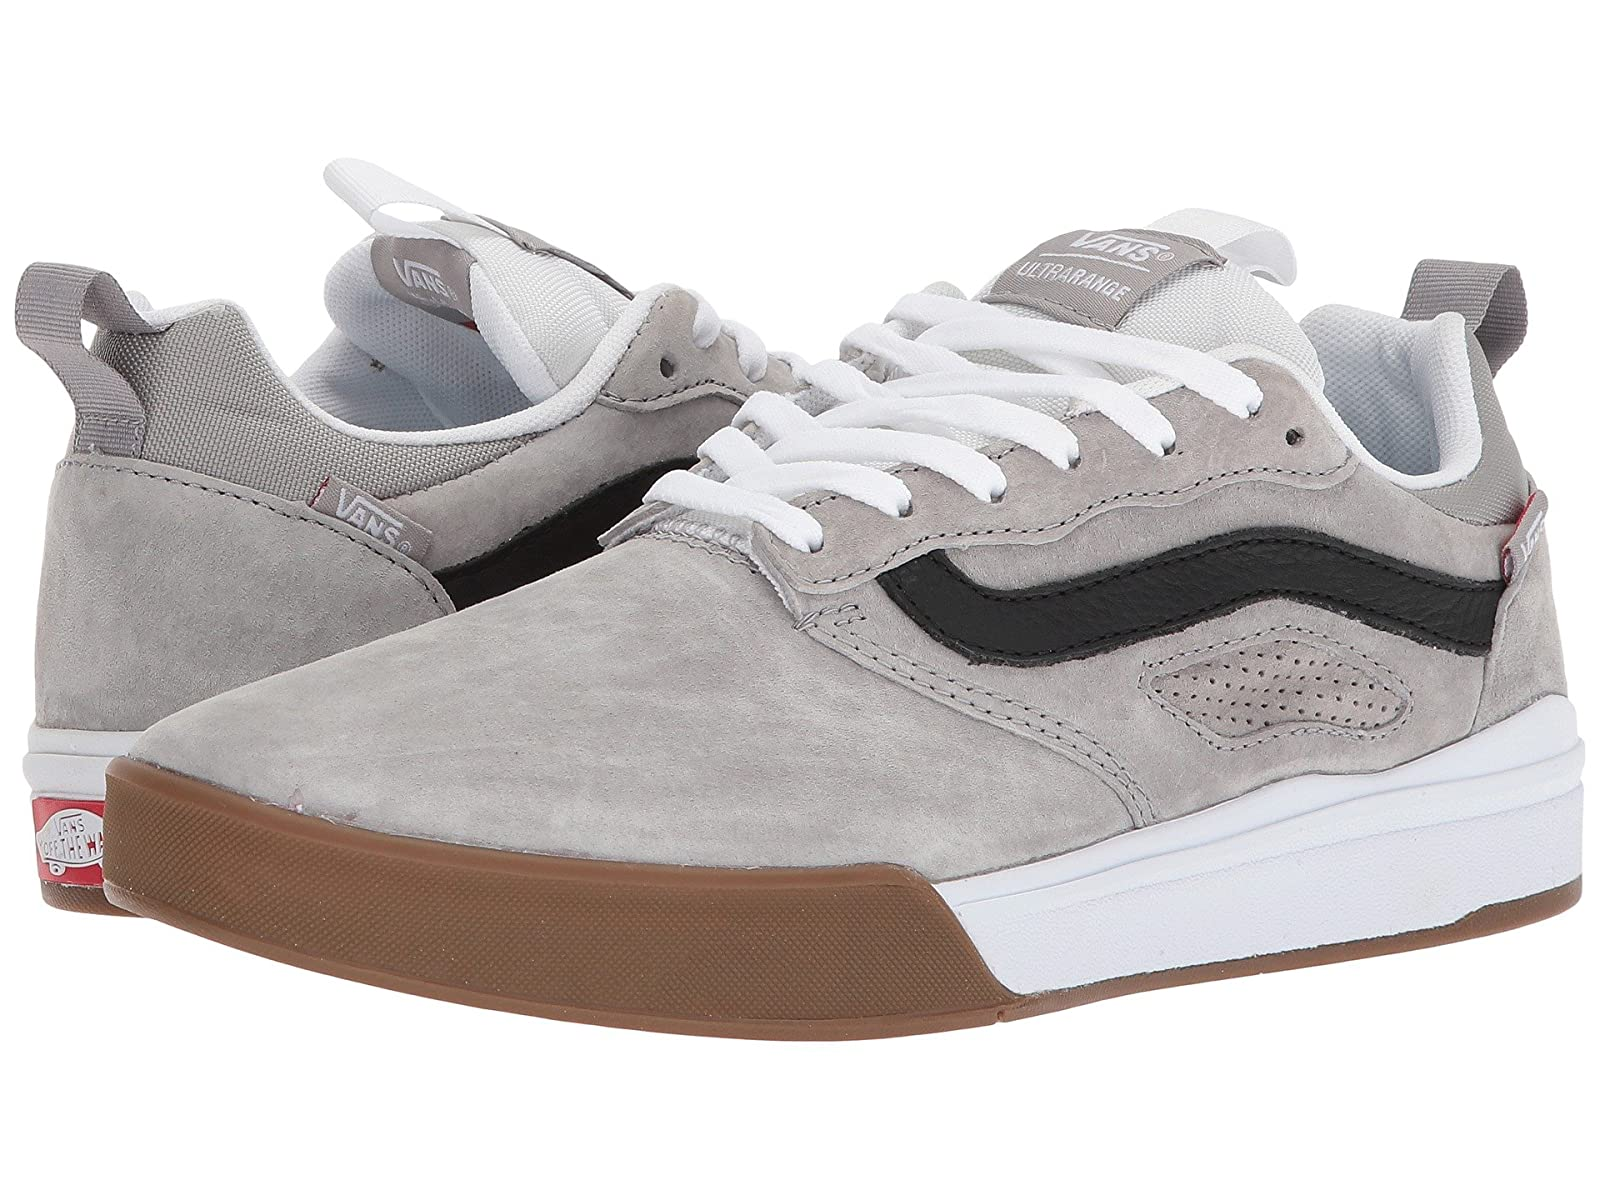 Vans Ultrarange ProCheap and distinctive eye-catching shoes